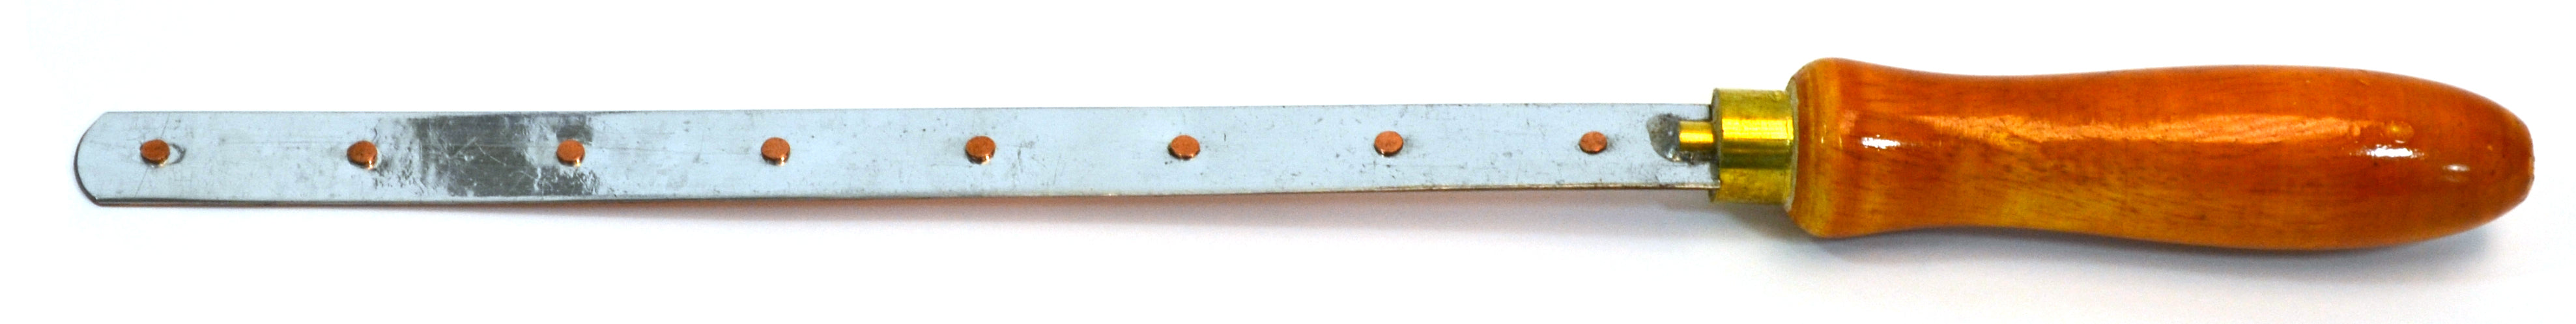 Compound bar, Copper and Iron